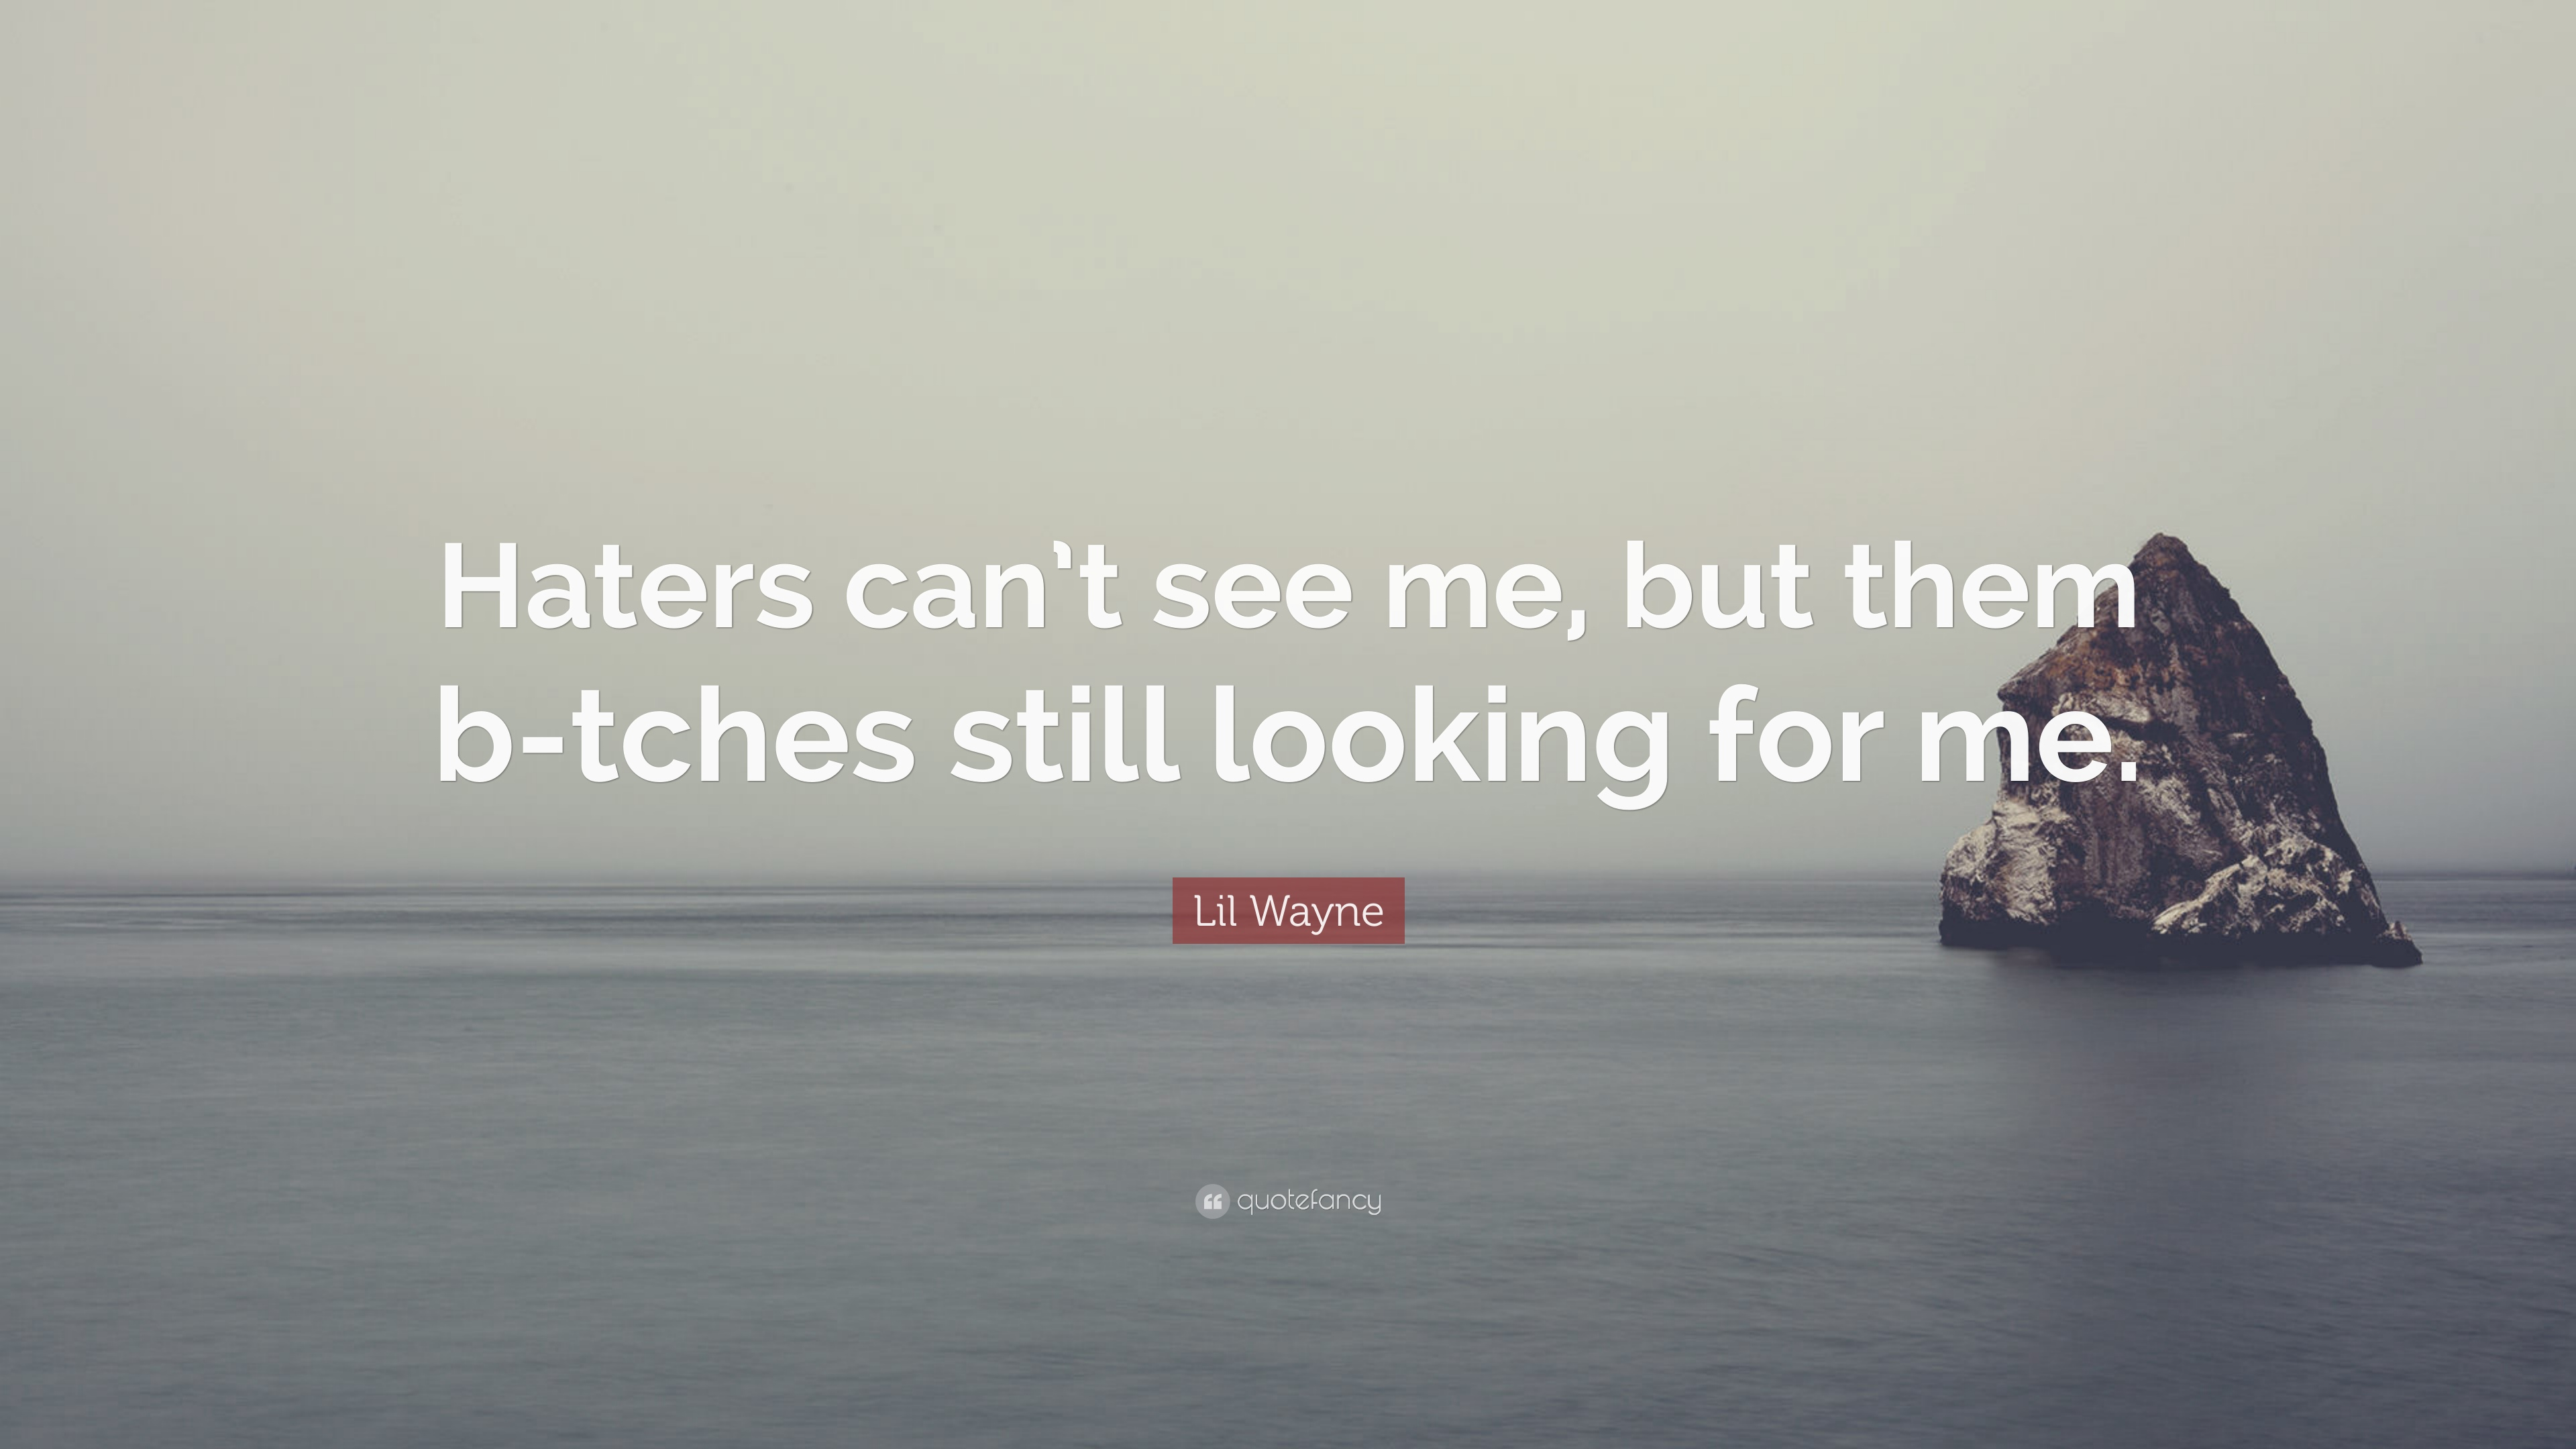 Lil Wayne Quotes About Haters